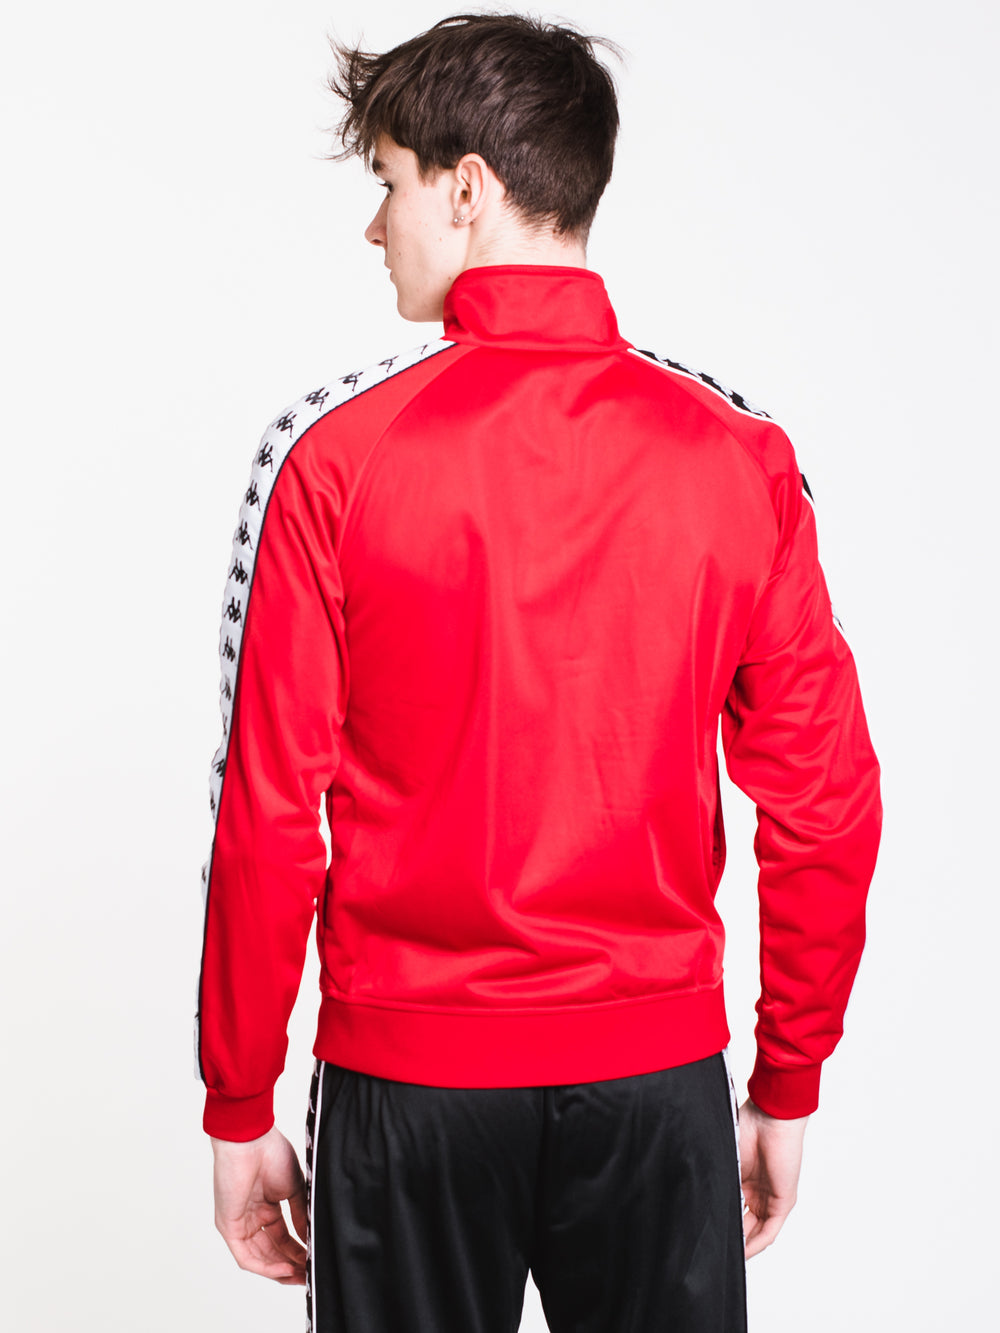 MENS BANDA ANNISTON TRACK Jacket - RED